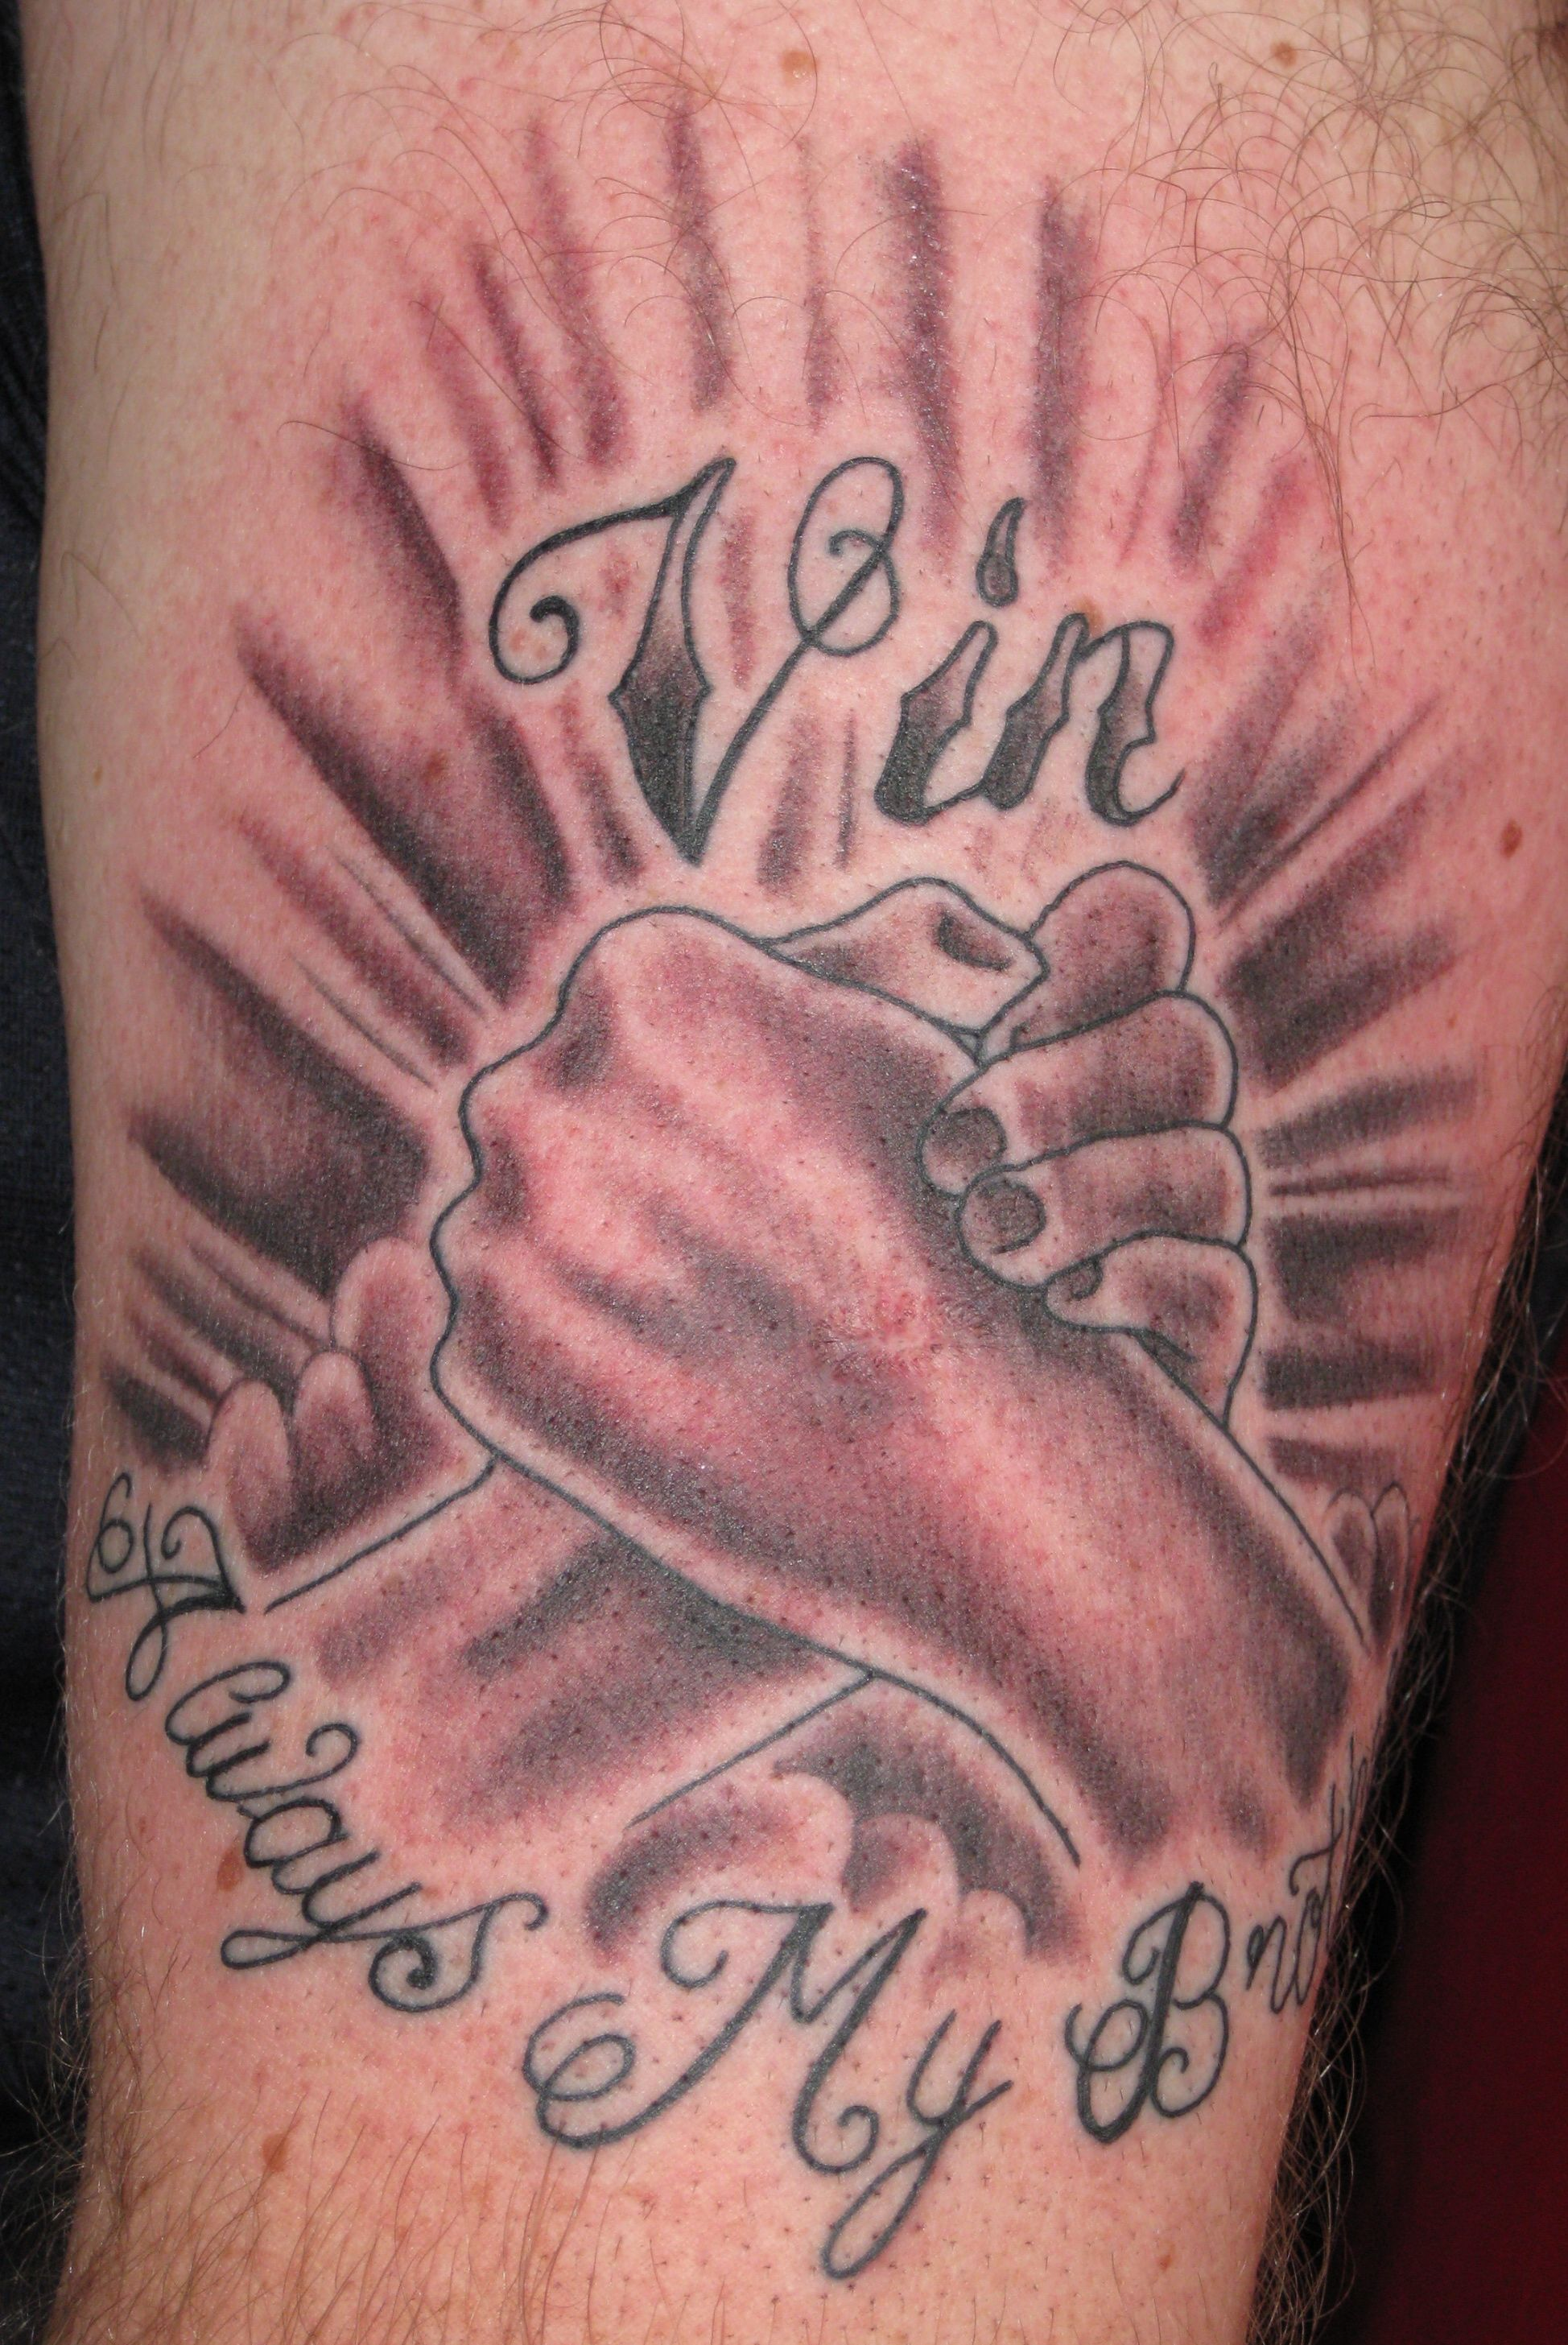 Brother brotherly hogarth liverpool love memorial for Sister memorial tattoos